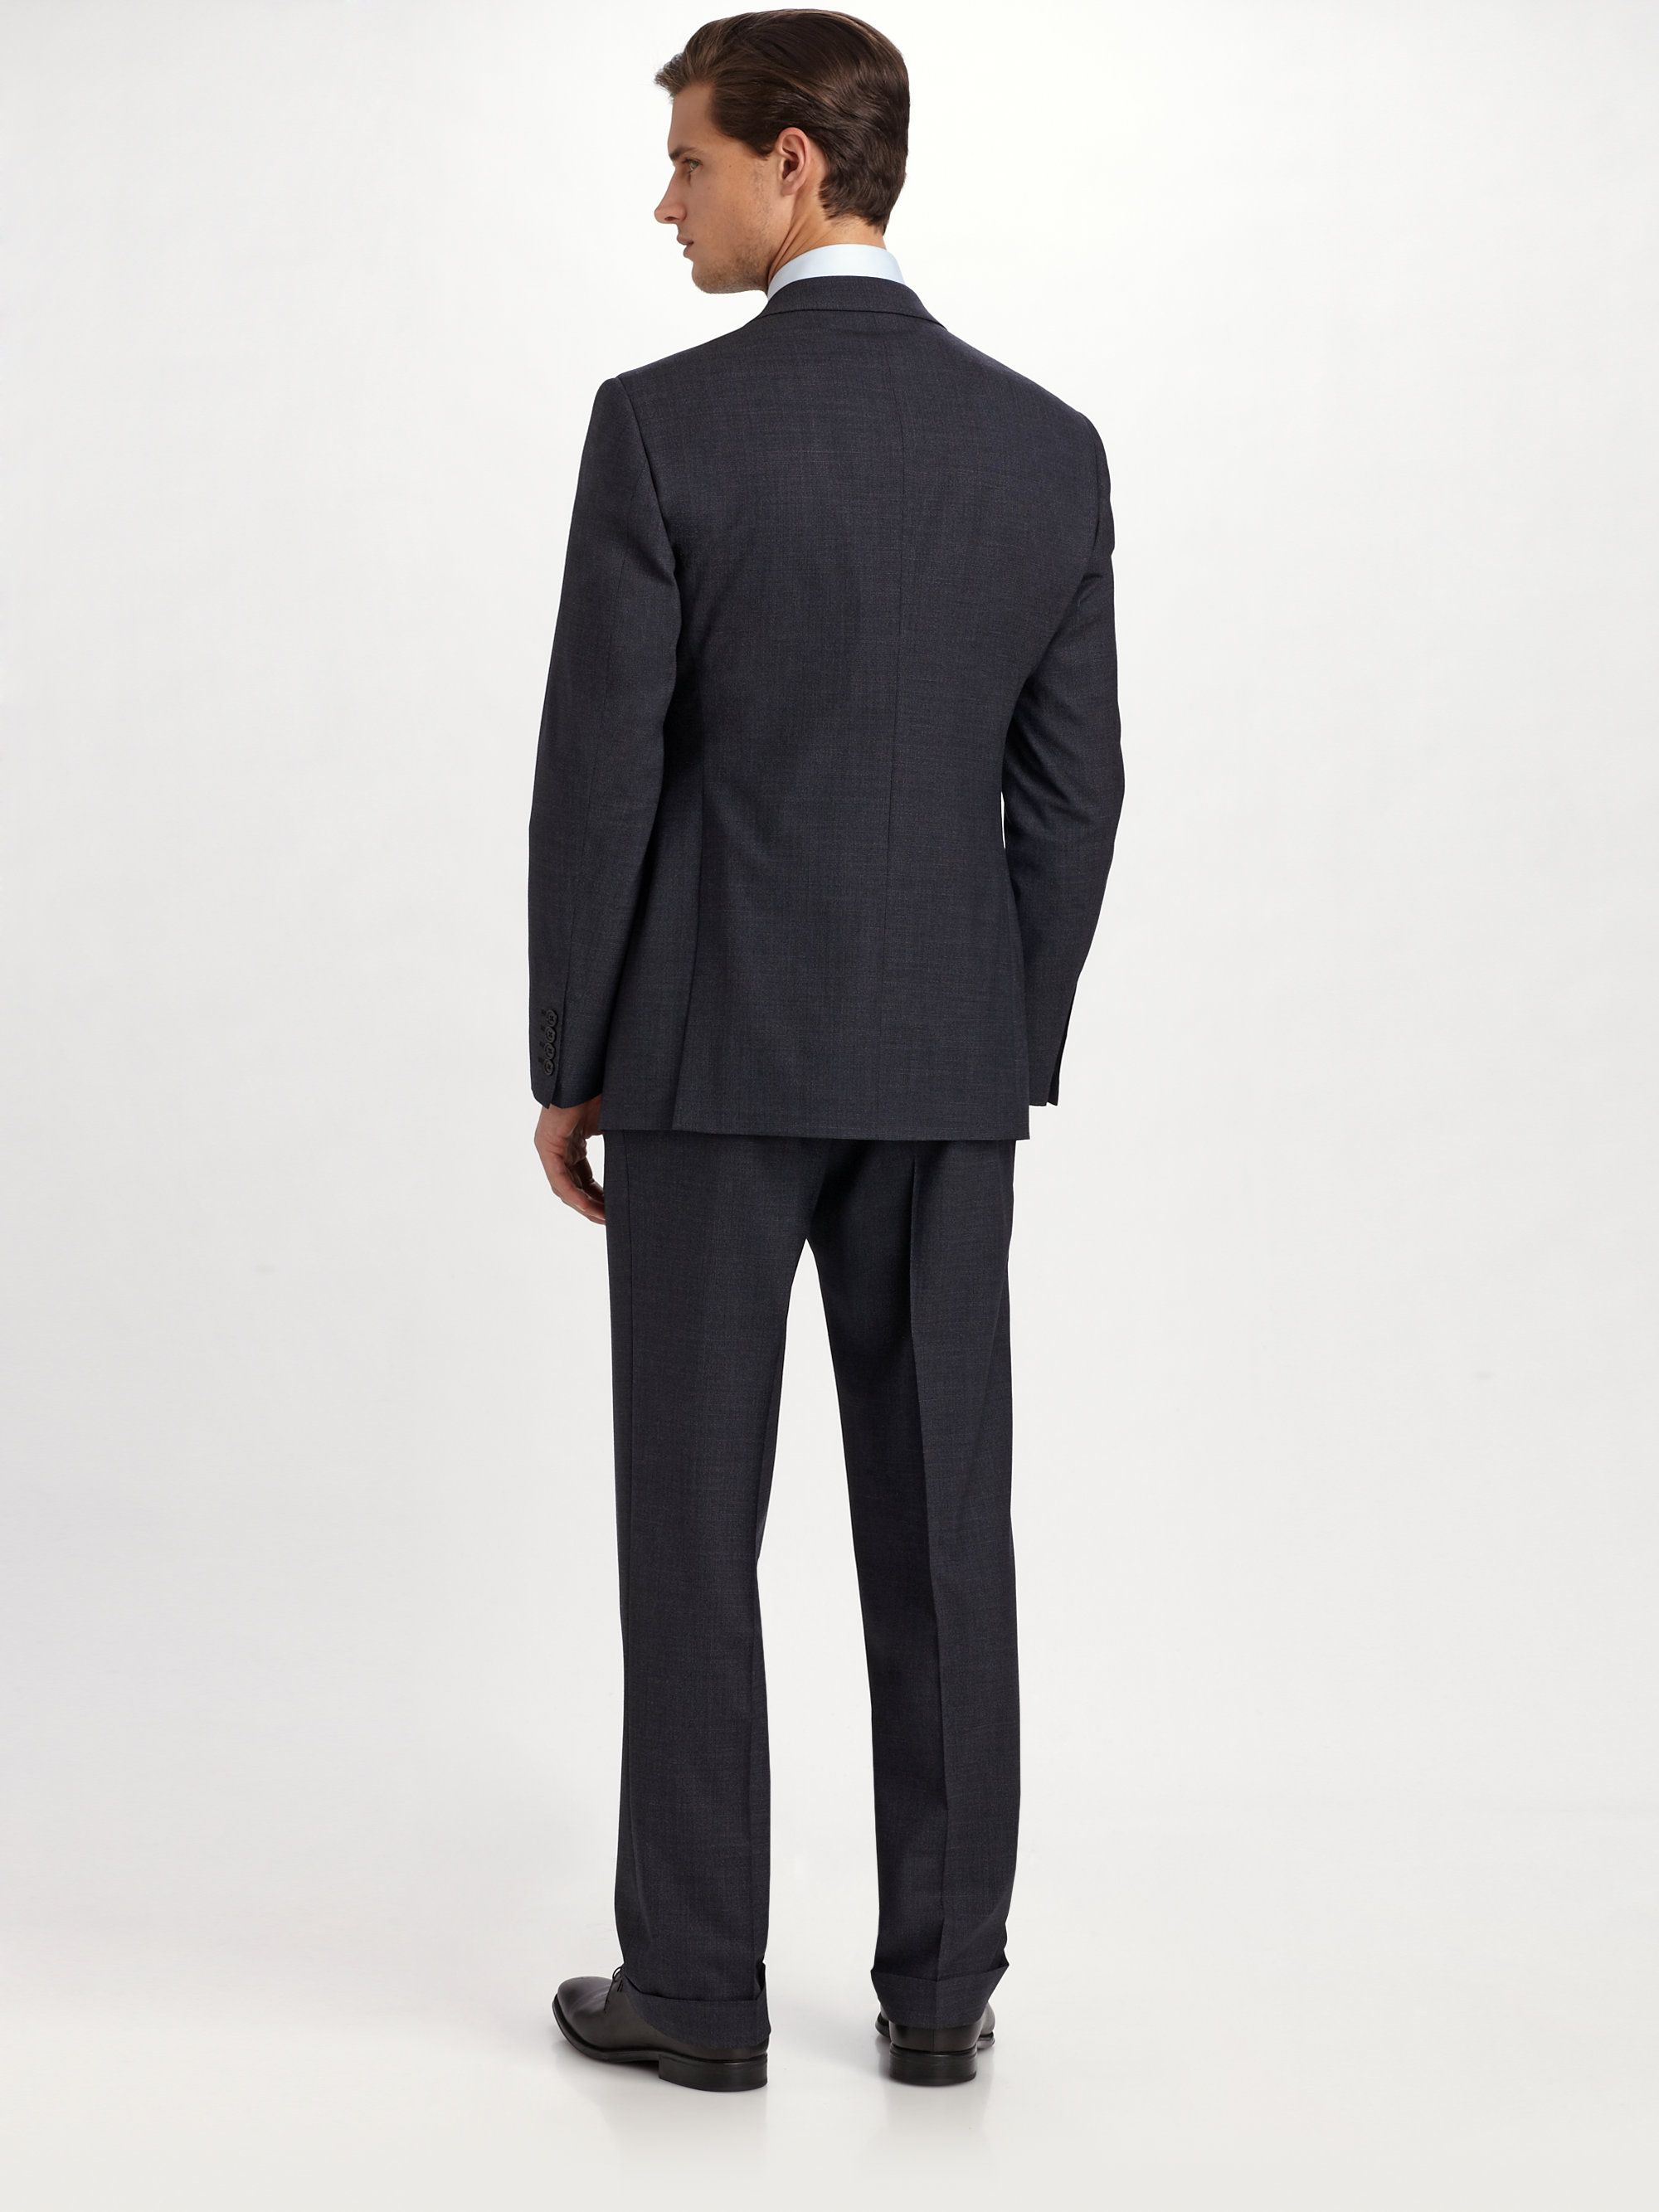 Image result for armani suit back